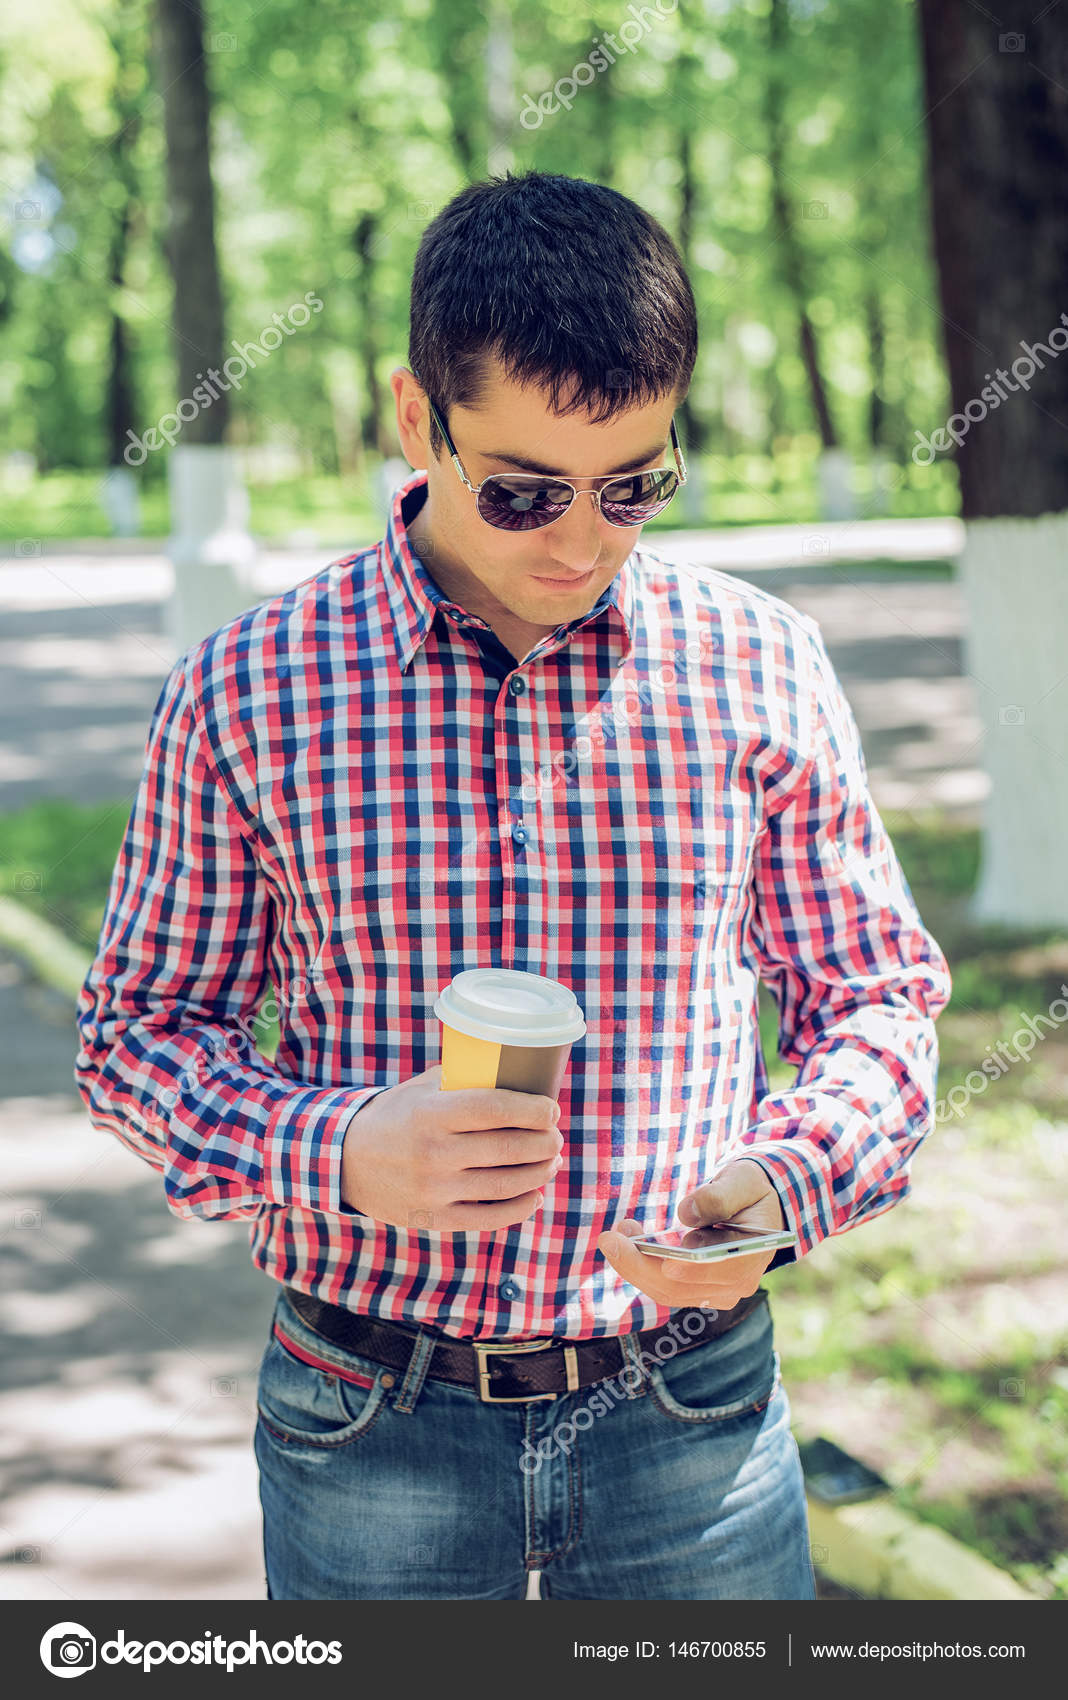 0285b99e0c A man in a shirt and jeans and sunglasses